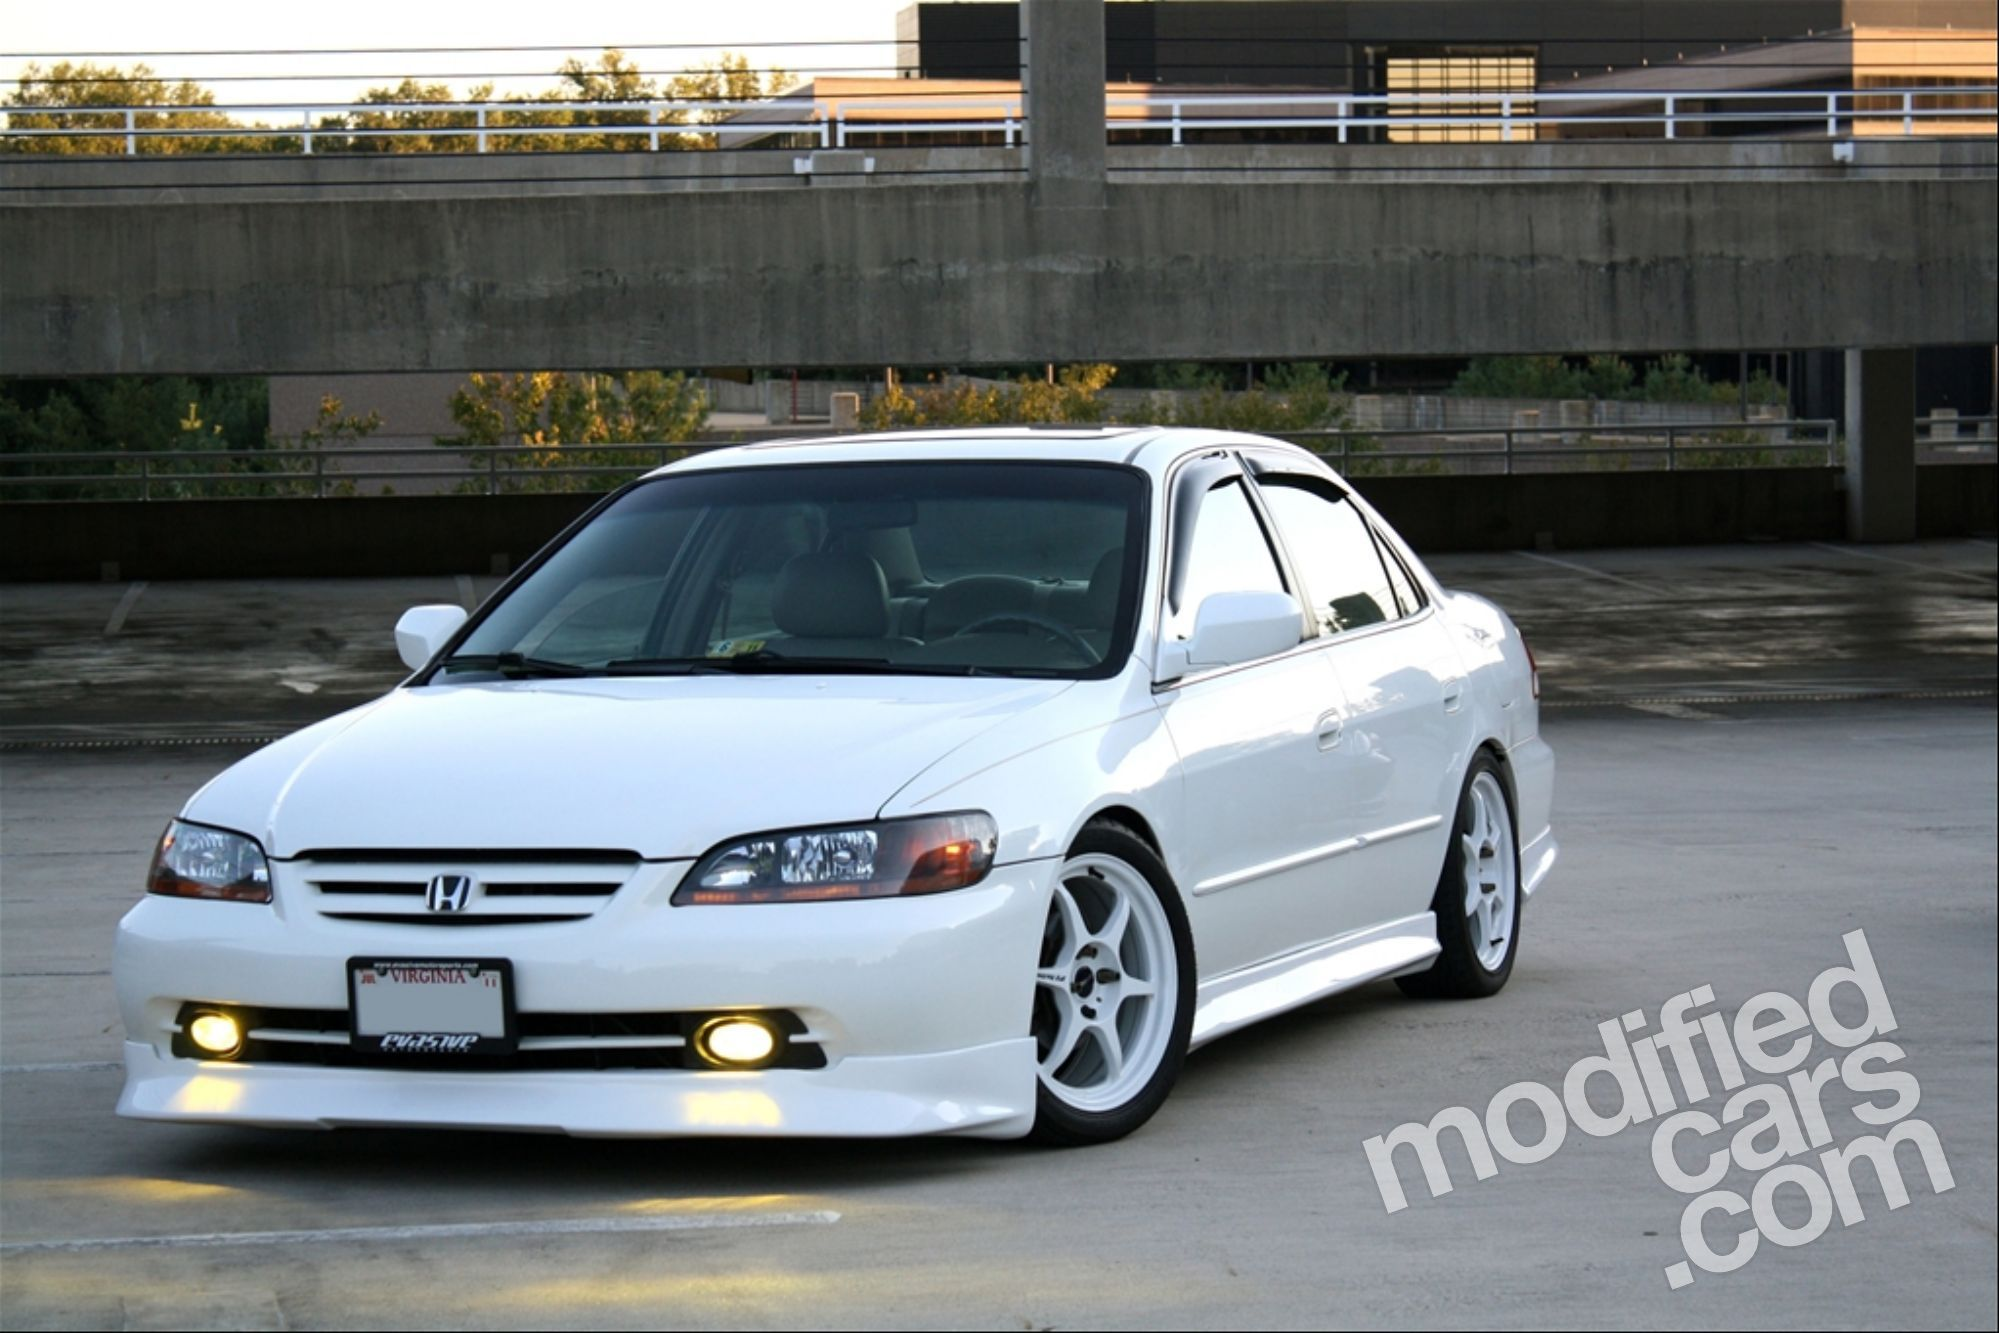 2002 honda accord ex custom champion white honda accord 2002 car images nihon honda nihon projects to try pinterest car images honda accord and